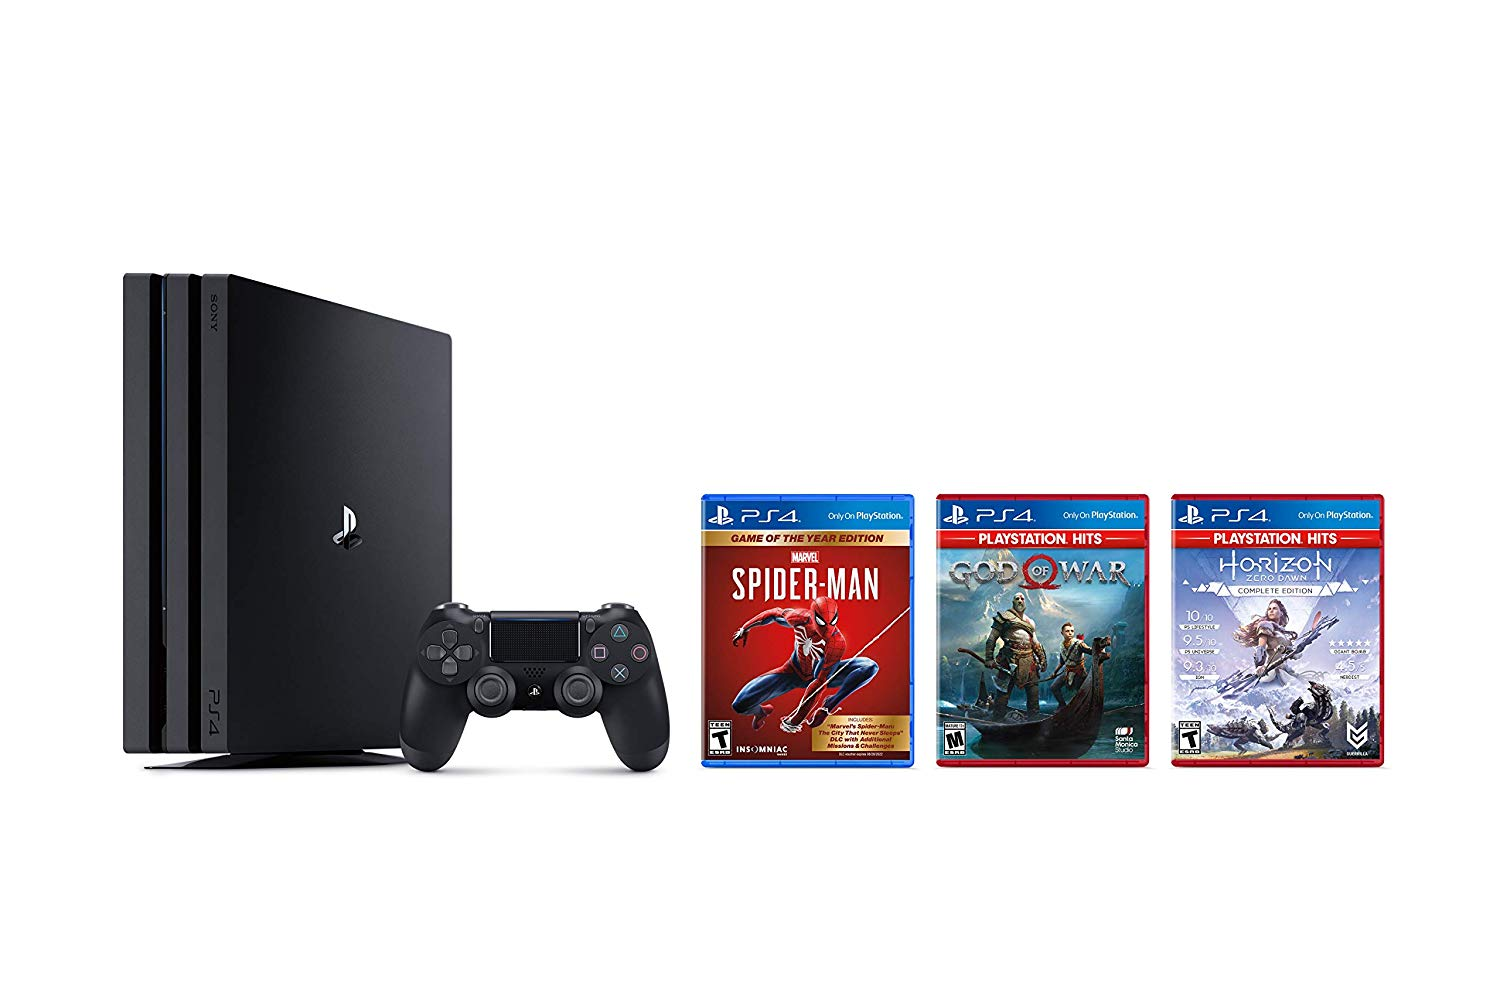 A PS4 Pro console with Spider-Man, God of War, and Horizon Zero Dawn cases next to it